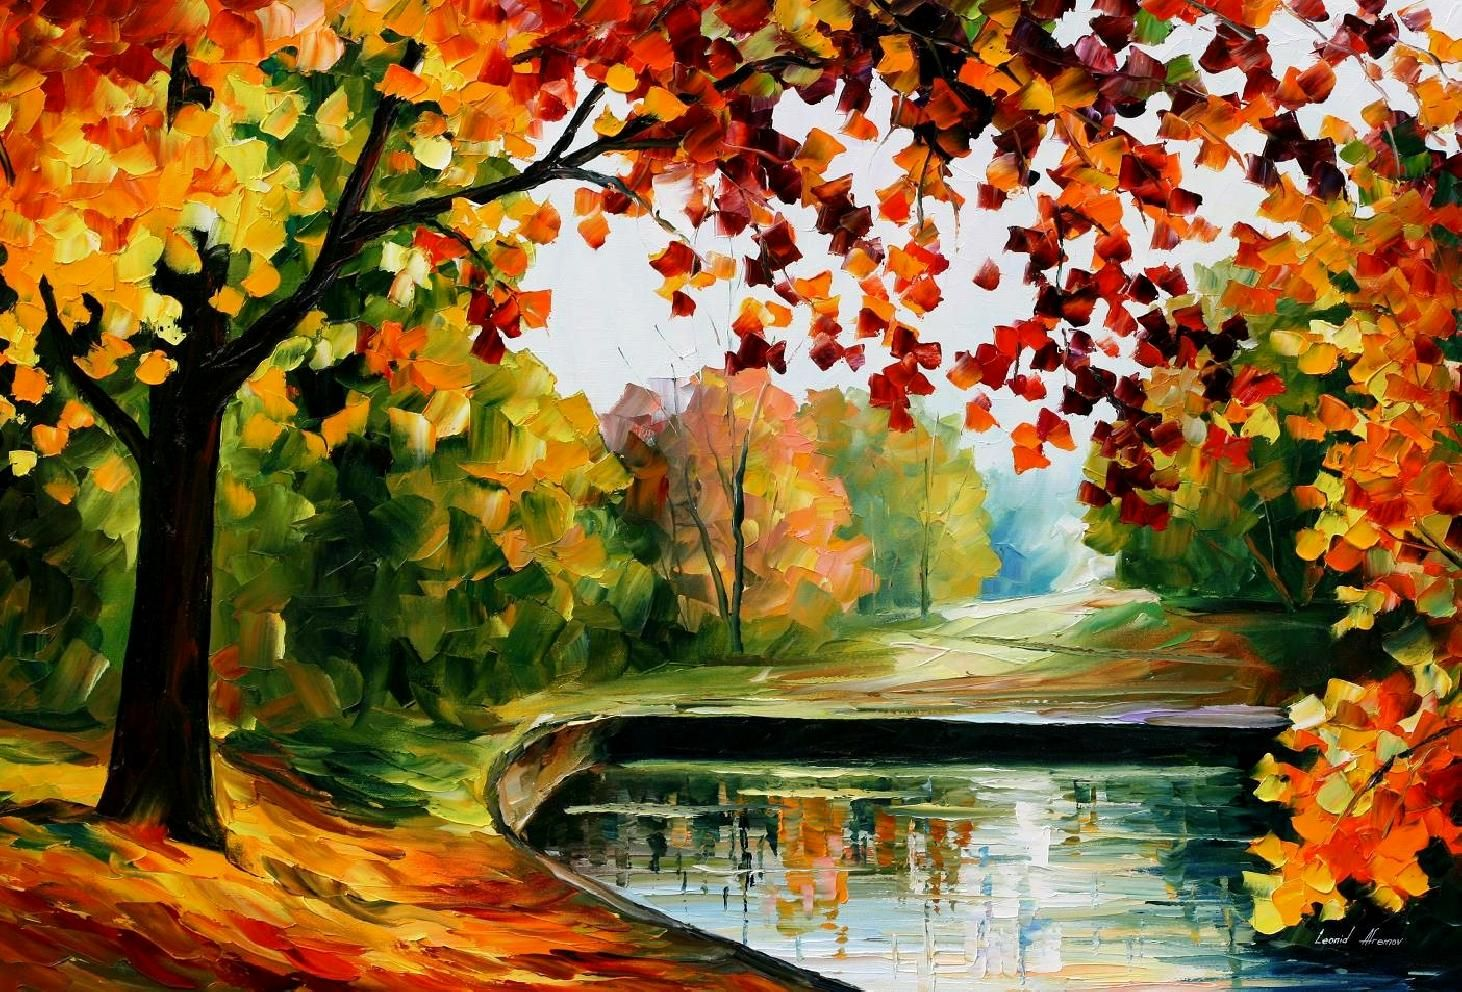 Leonid Afremov Oil On Canvas Palette Knife Buy Original Paintings Art Famous Artist Biography Off Landscape Wall Art Modern Oil Painting Canvas Painting